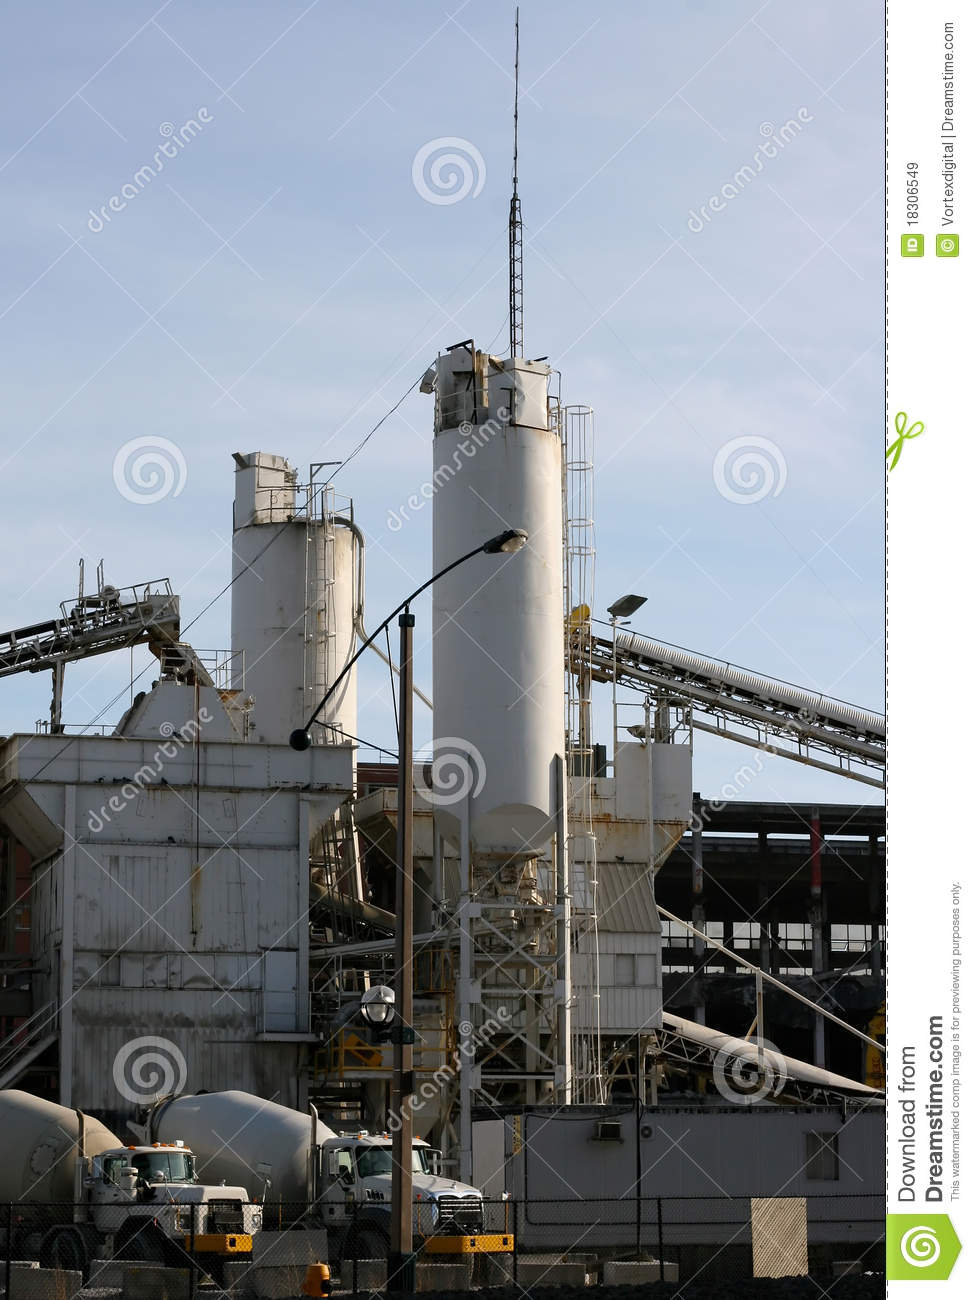 Cement Manufacturing Plants United States : Cement plant royalty free stock images image